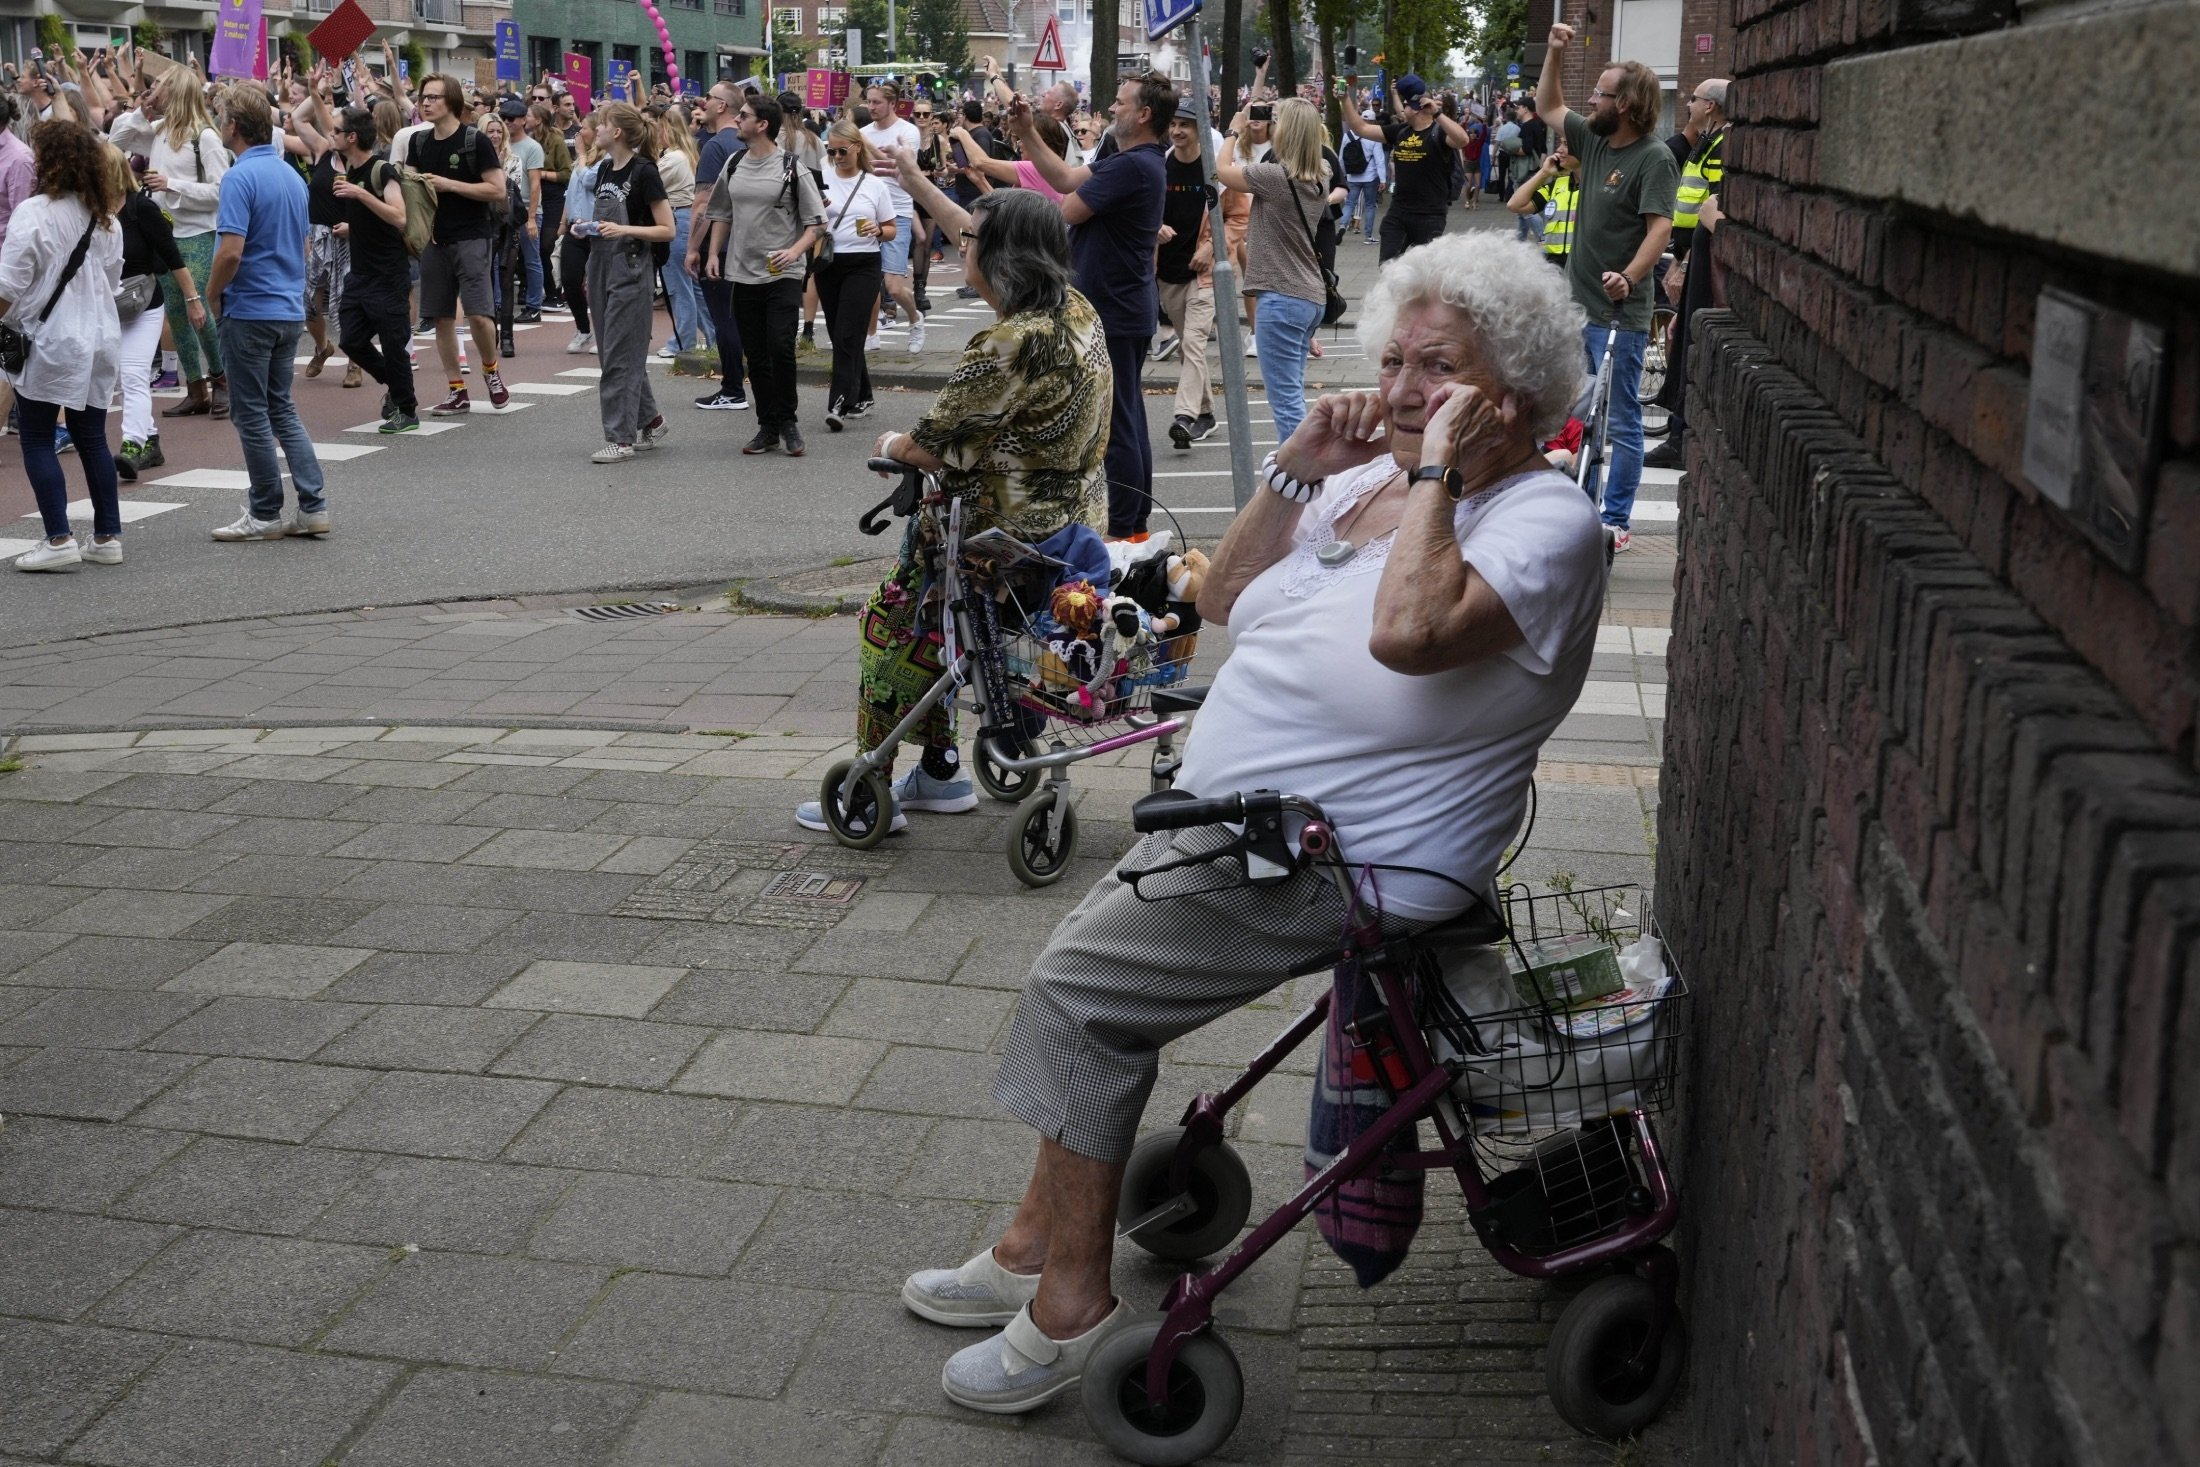 An older woman shields her ears during a protest of organizers and fans of music festivals stage against the government's COVID-19 restrictions on large-scale outdoor events, in Amsterdam, Netherlands, Aug. 21, 2021. (AP Photo)